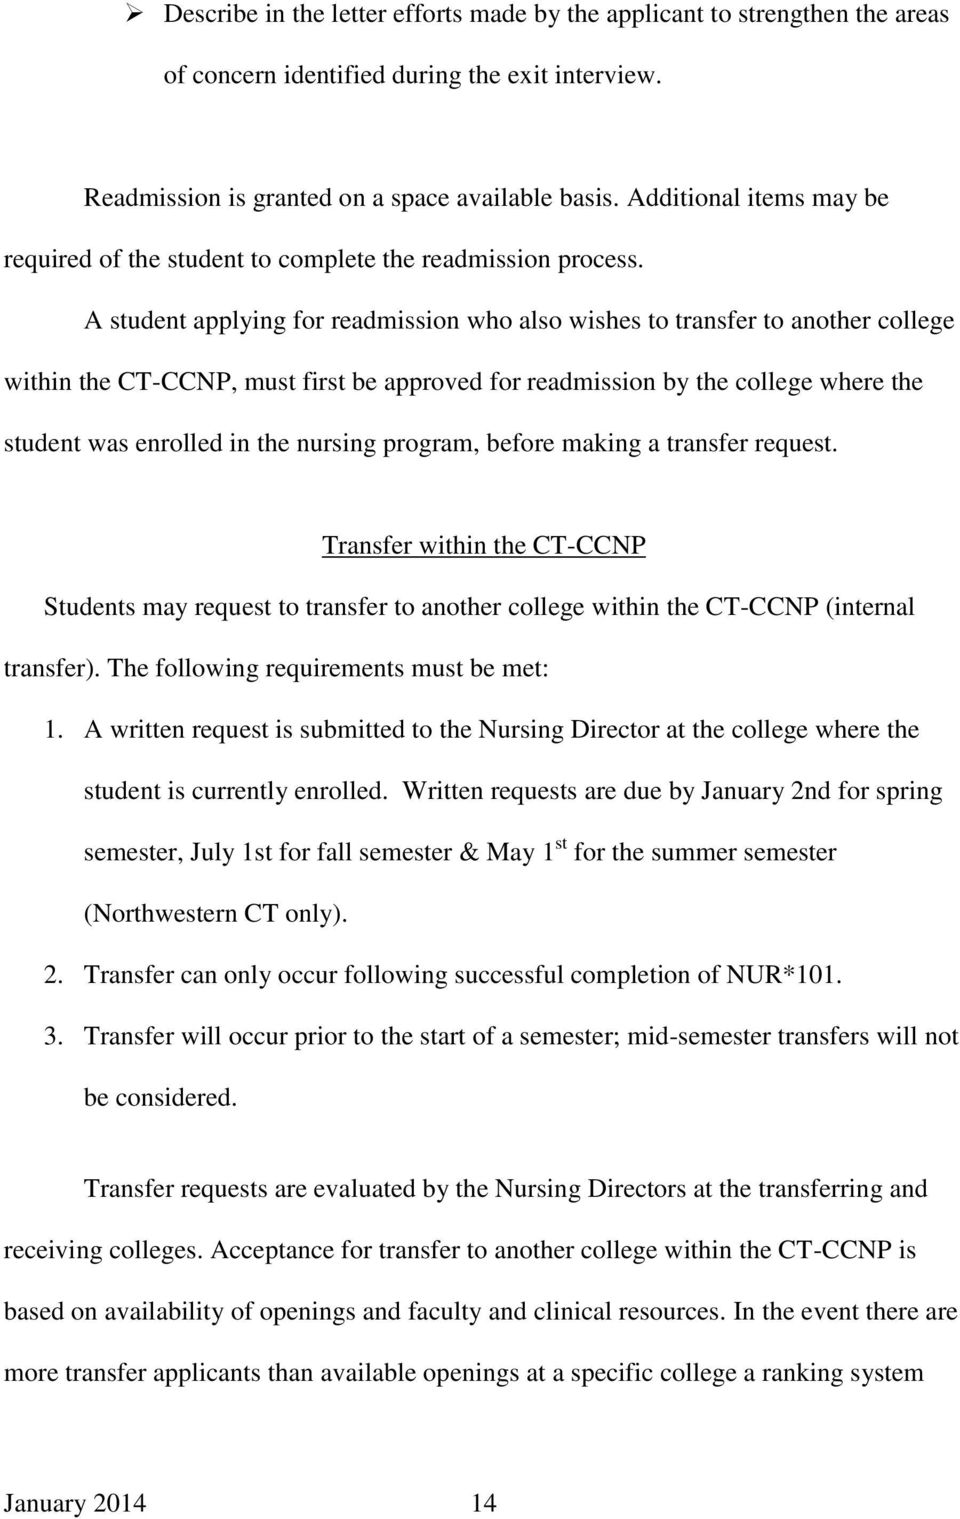 A student applying for readmission who also wishes to transfer to another college within the CT-CCNP, must first be approved for readmission by the college where the student was enrolled in the